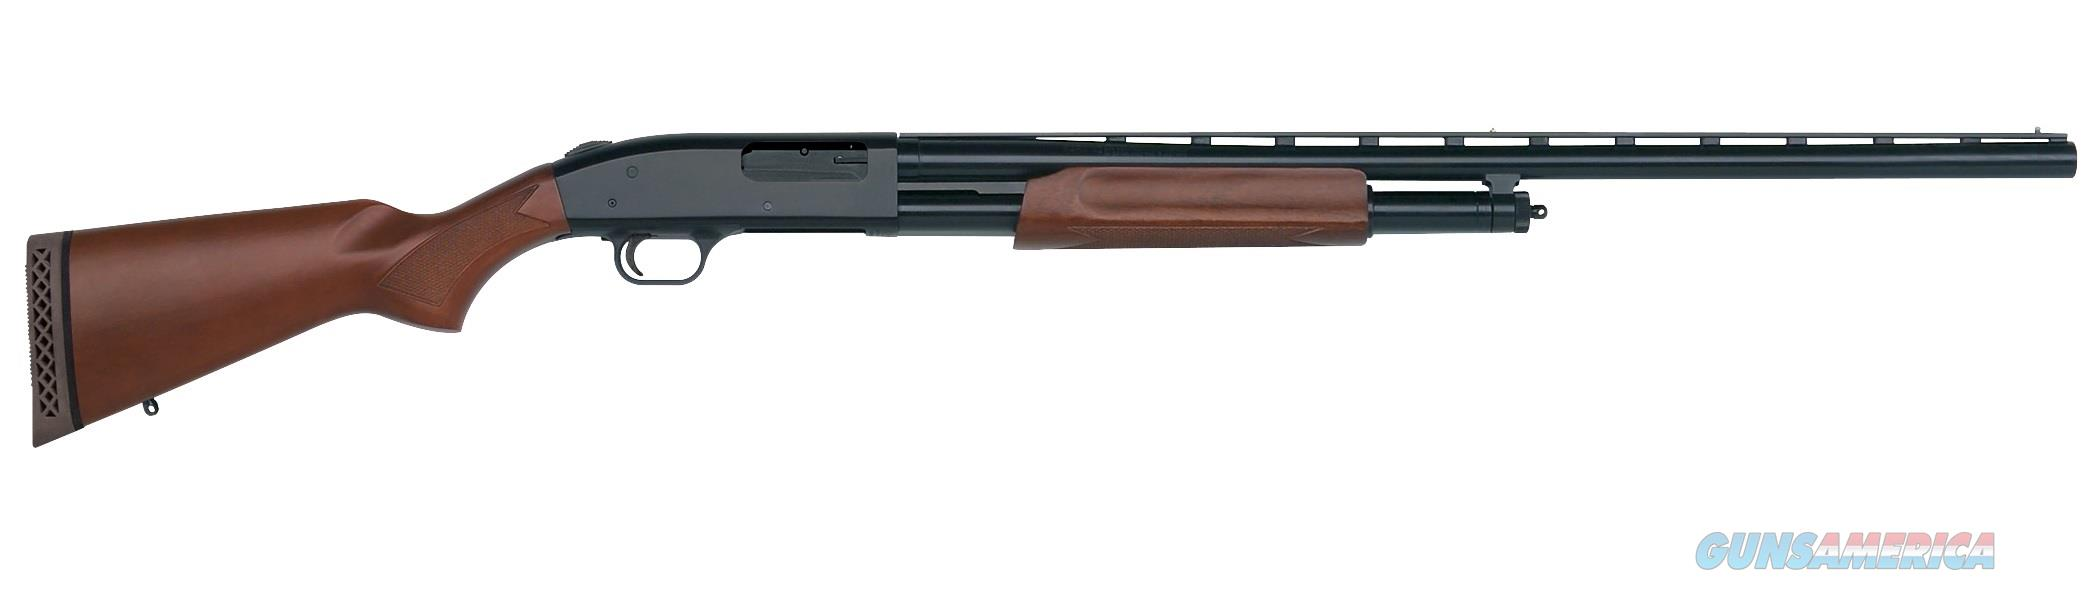 "Mossberg 500 Hunting All Purpose Field 12 GA 28"" Ported 50120   Guns > Shotguns > Mossberg Shotguns > Pump > Sporting"